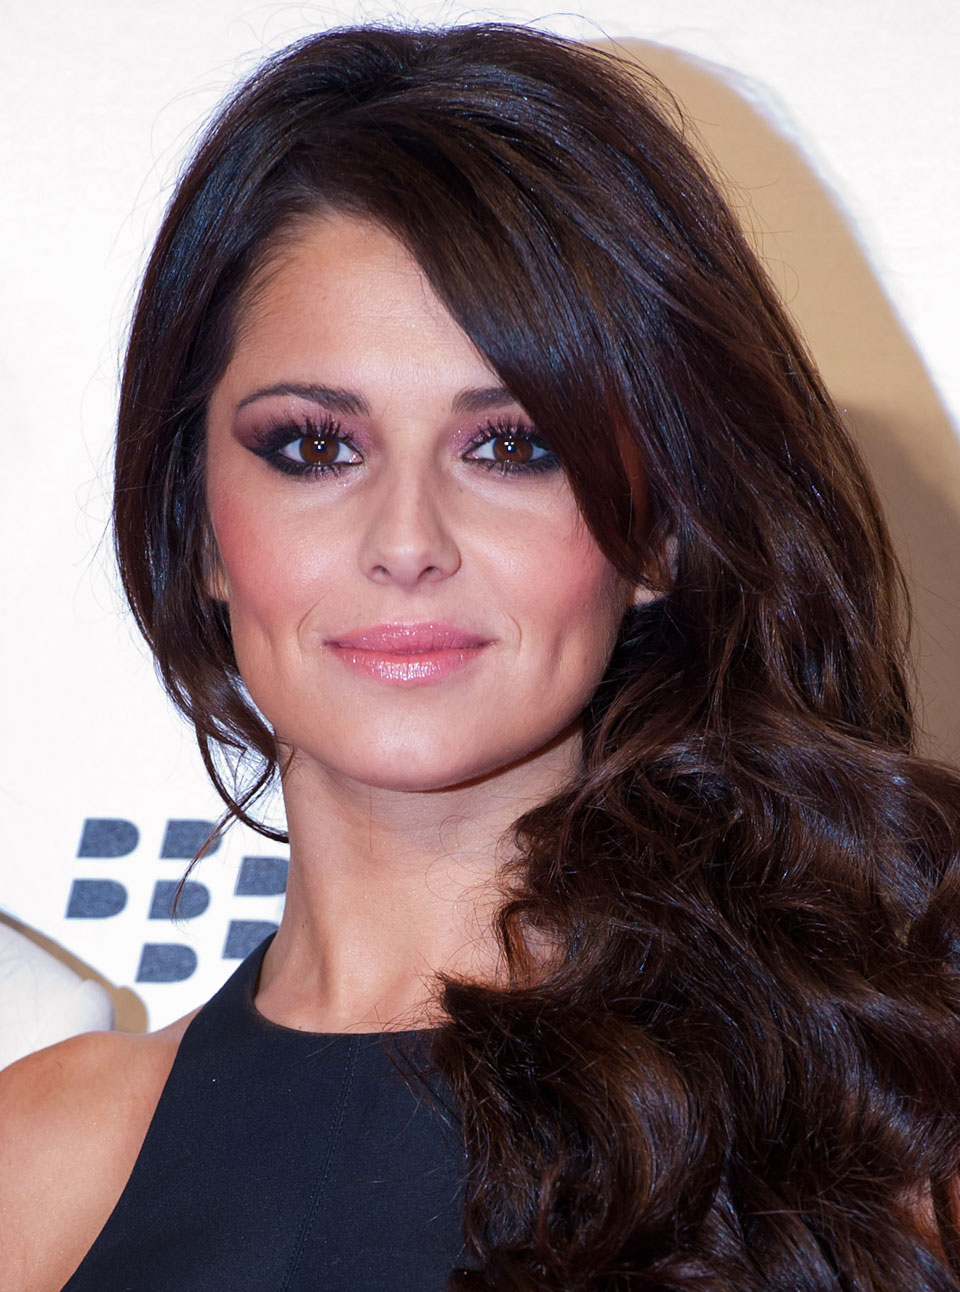 Cheryl Cole Measurements, Height, Weight, Bra Size, Age, Wiki, Affairs